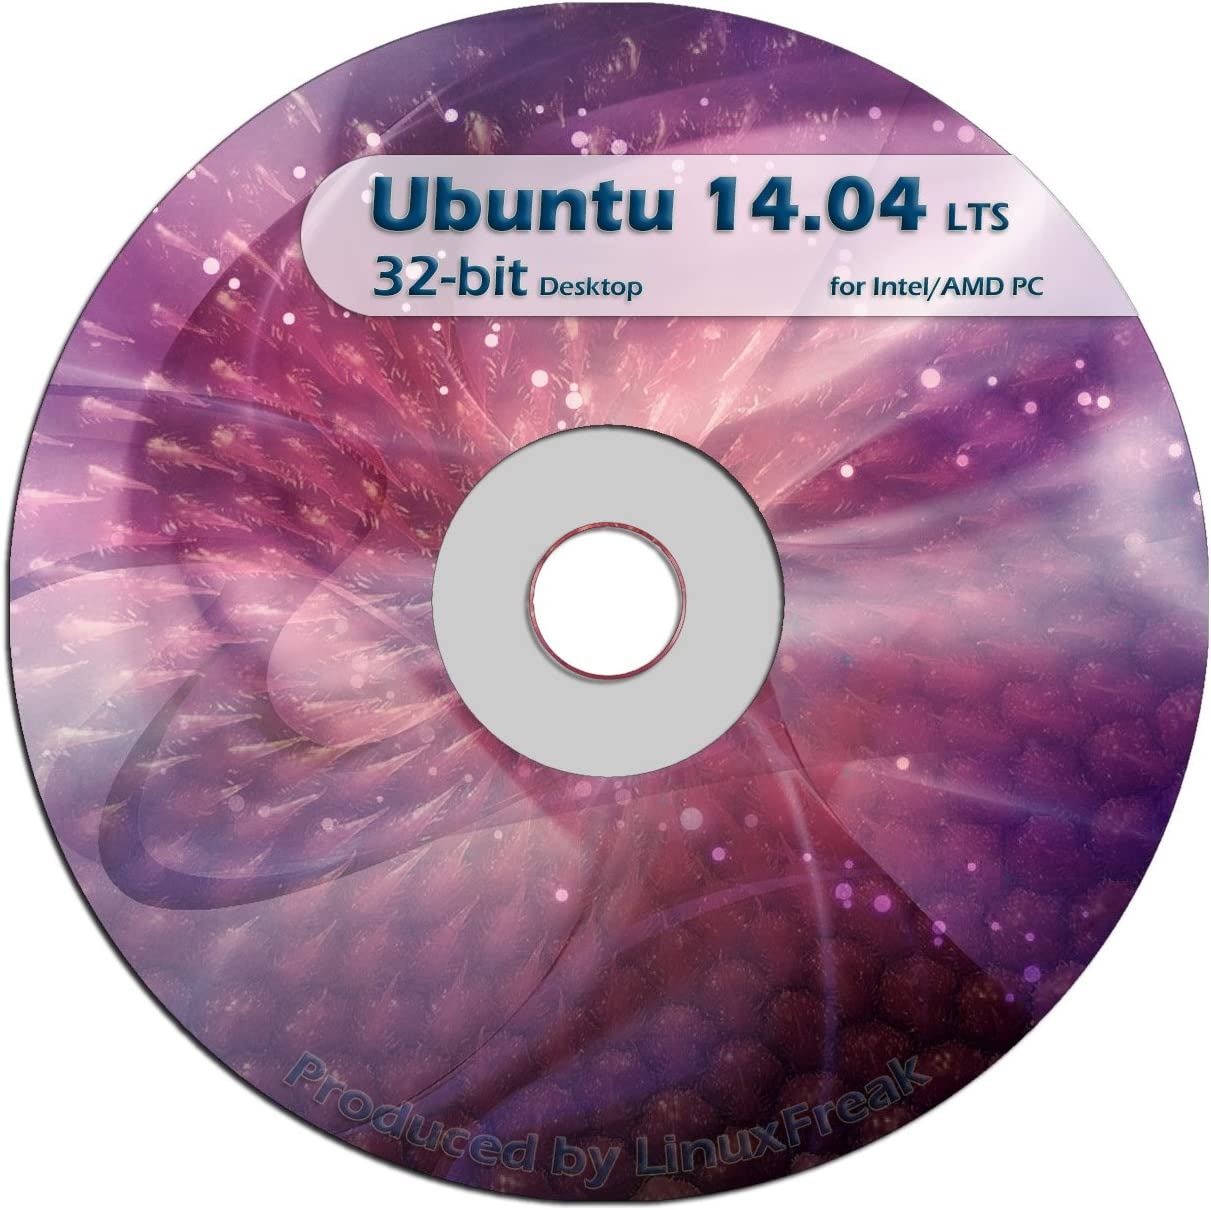 Ubuntu Linux 14.04 DVD - Long Support Term Low price 32-bit OFFICIAL El Paso Mall rel